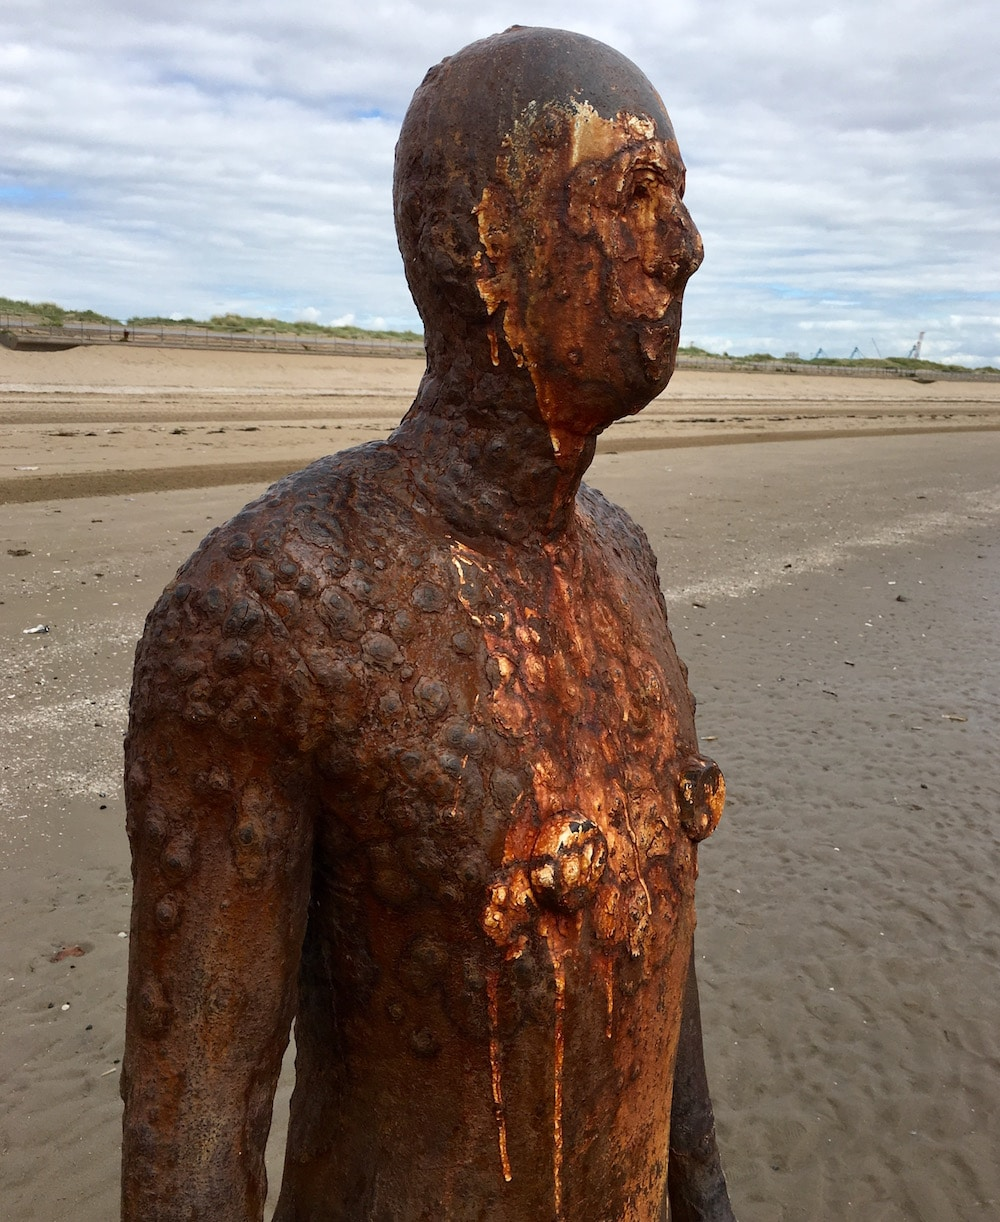 Crosby Beach Another Place Antony Gormley Liverpool Biennial 2016